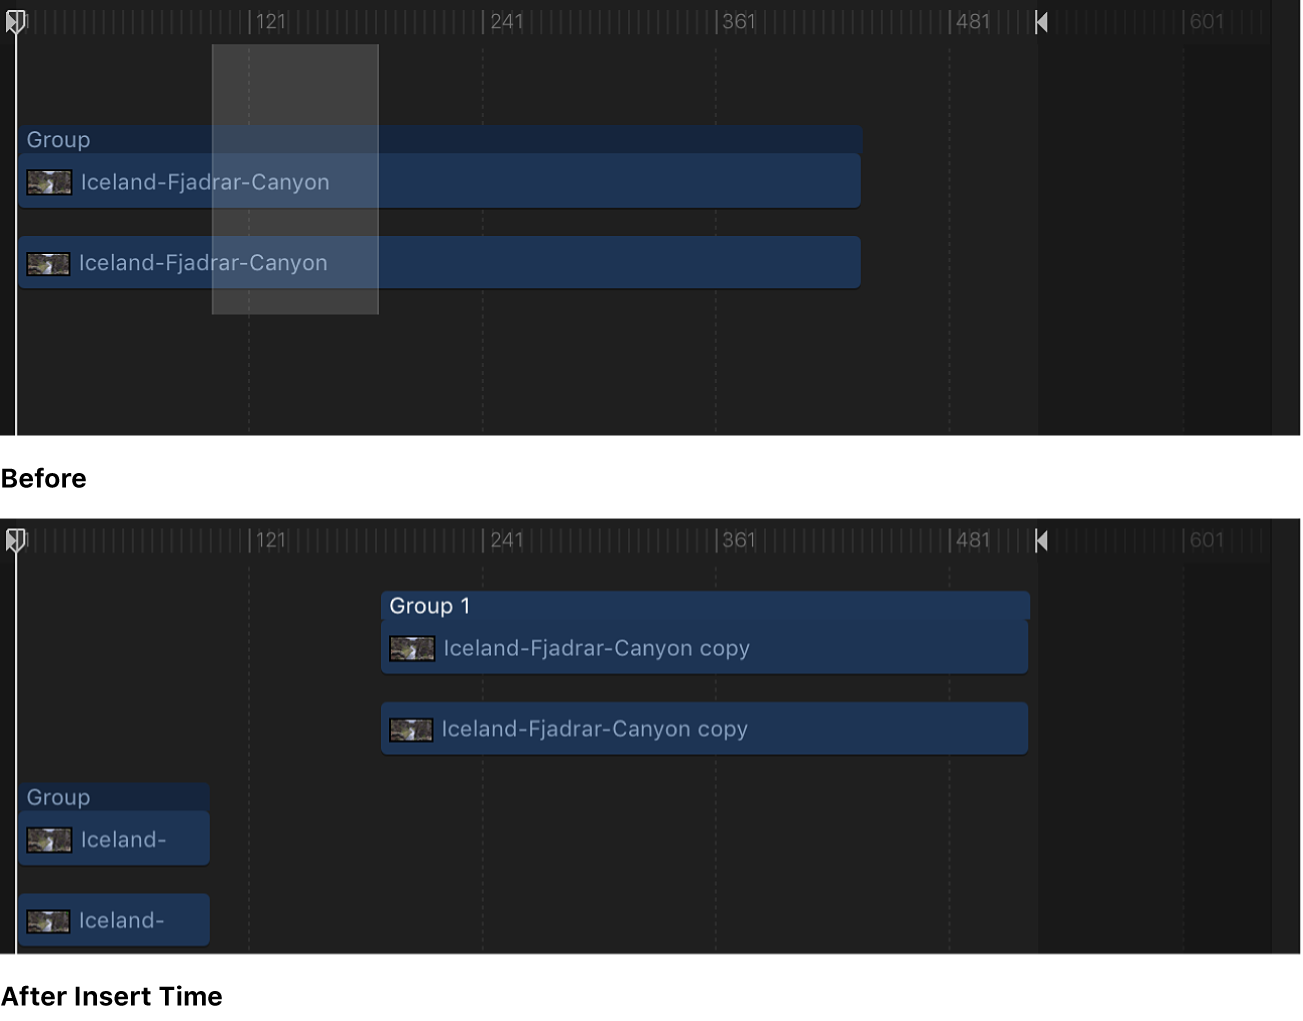 Timeline showing blank space being inserted into a sequence